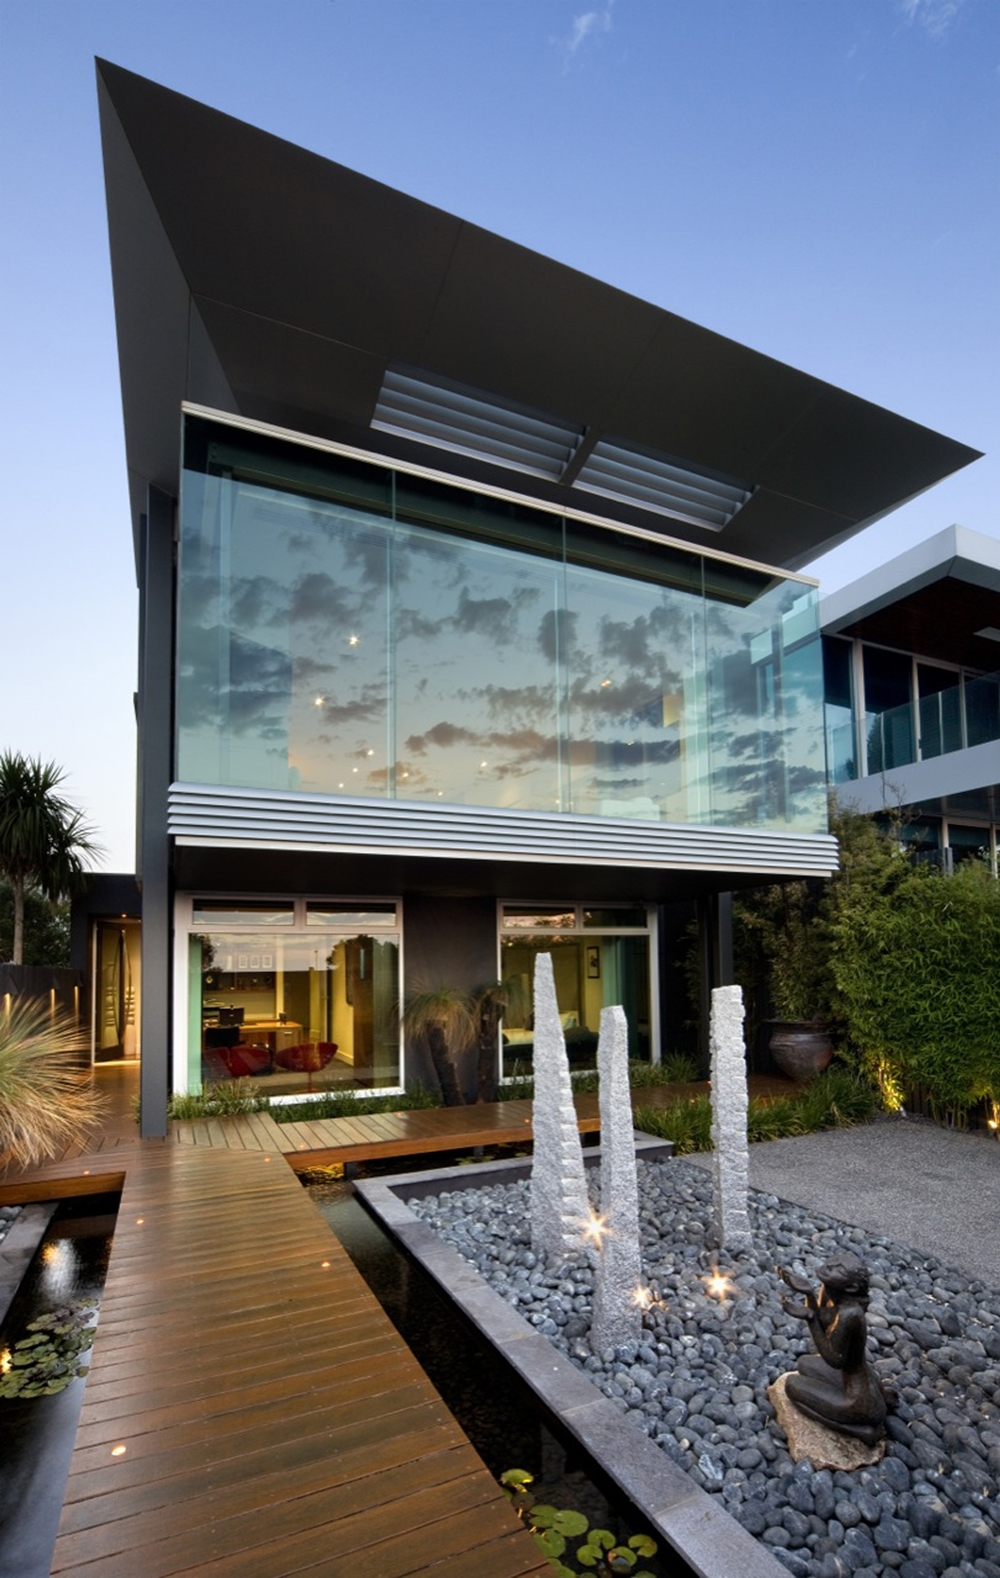 25 Modern House Designs That Will Make Your Abode Cozier ... on Modern House Ideas  id=26513